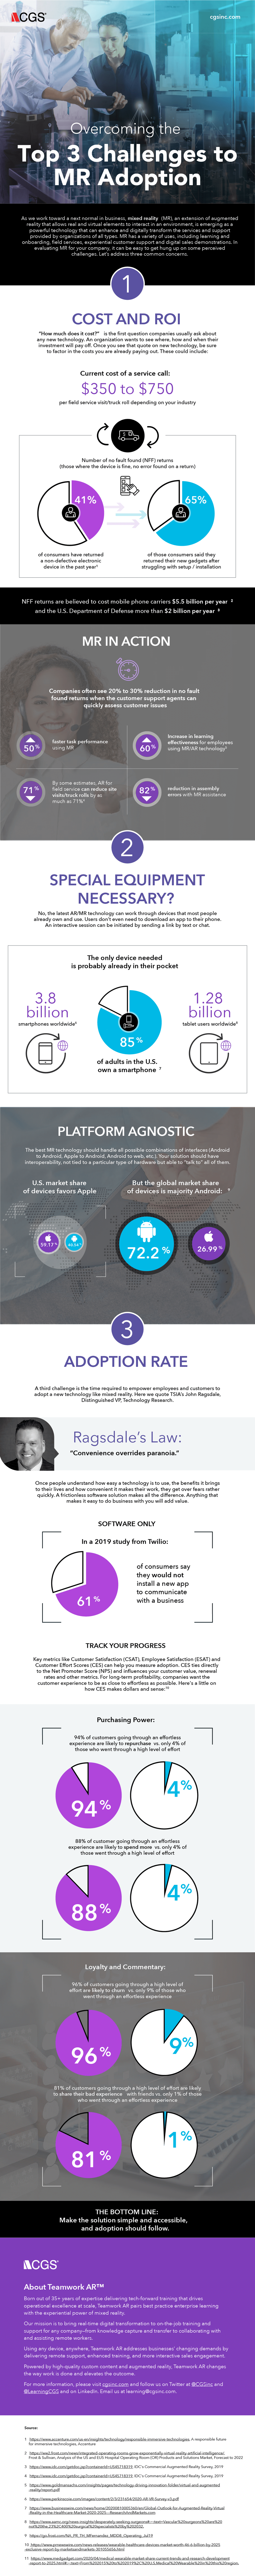 Overcoming the Top 3 Challenges to MR Adoption infographic